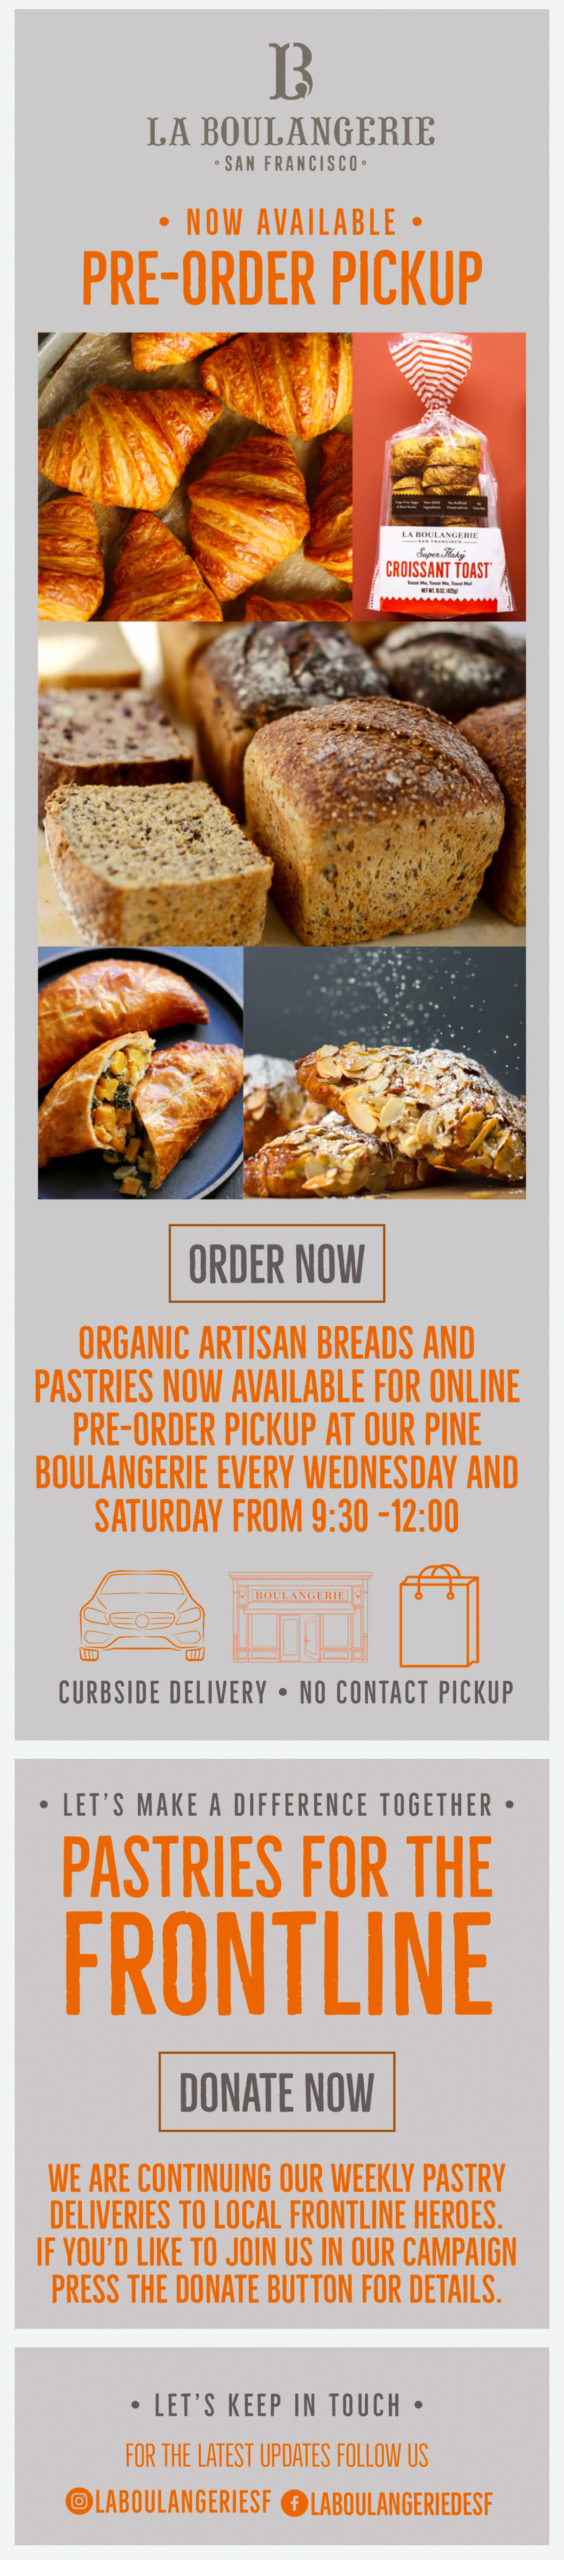 La Boulangerie - Email: Pre-Order Pickup Now Available